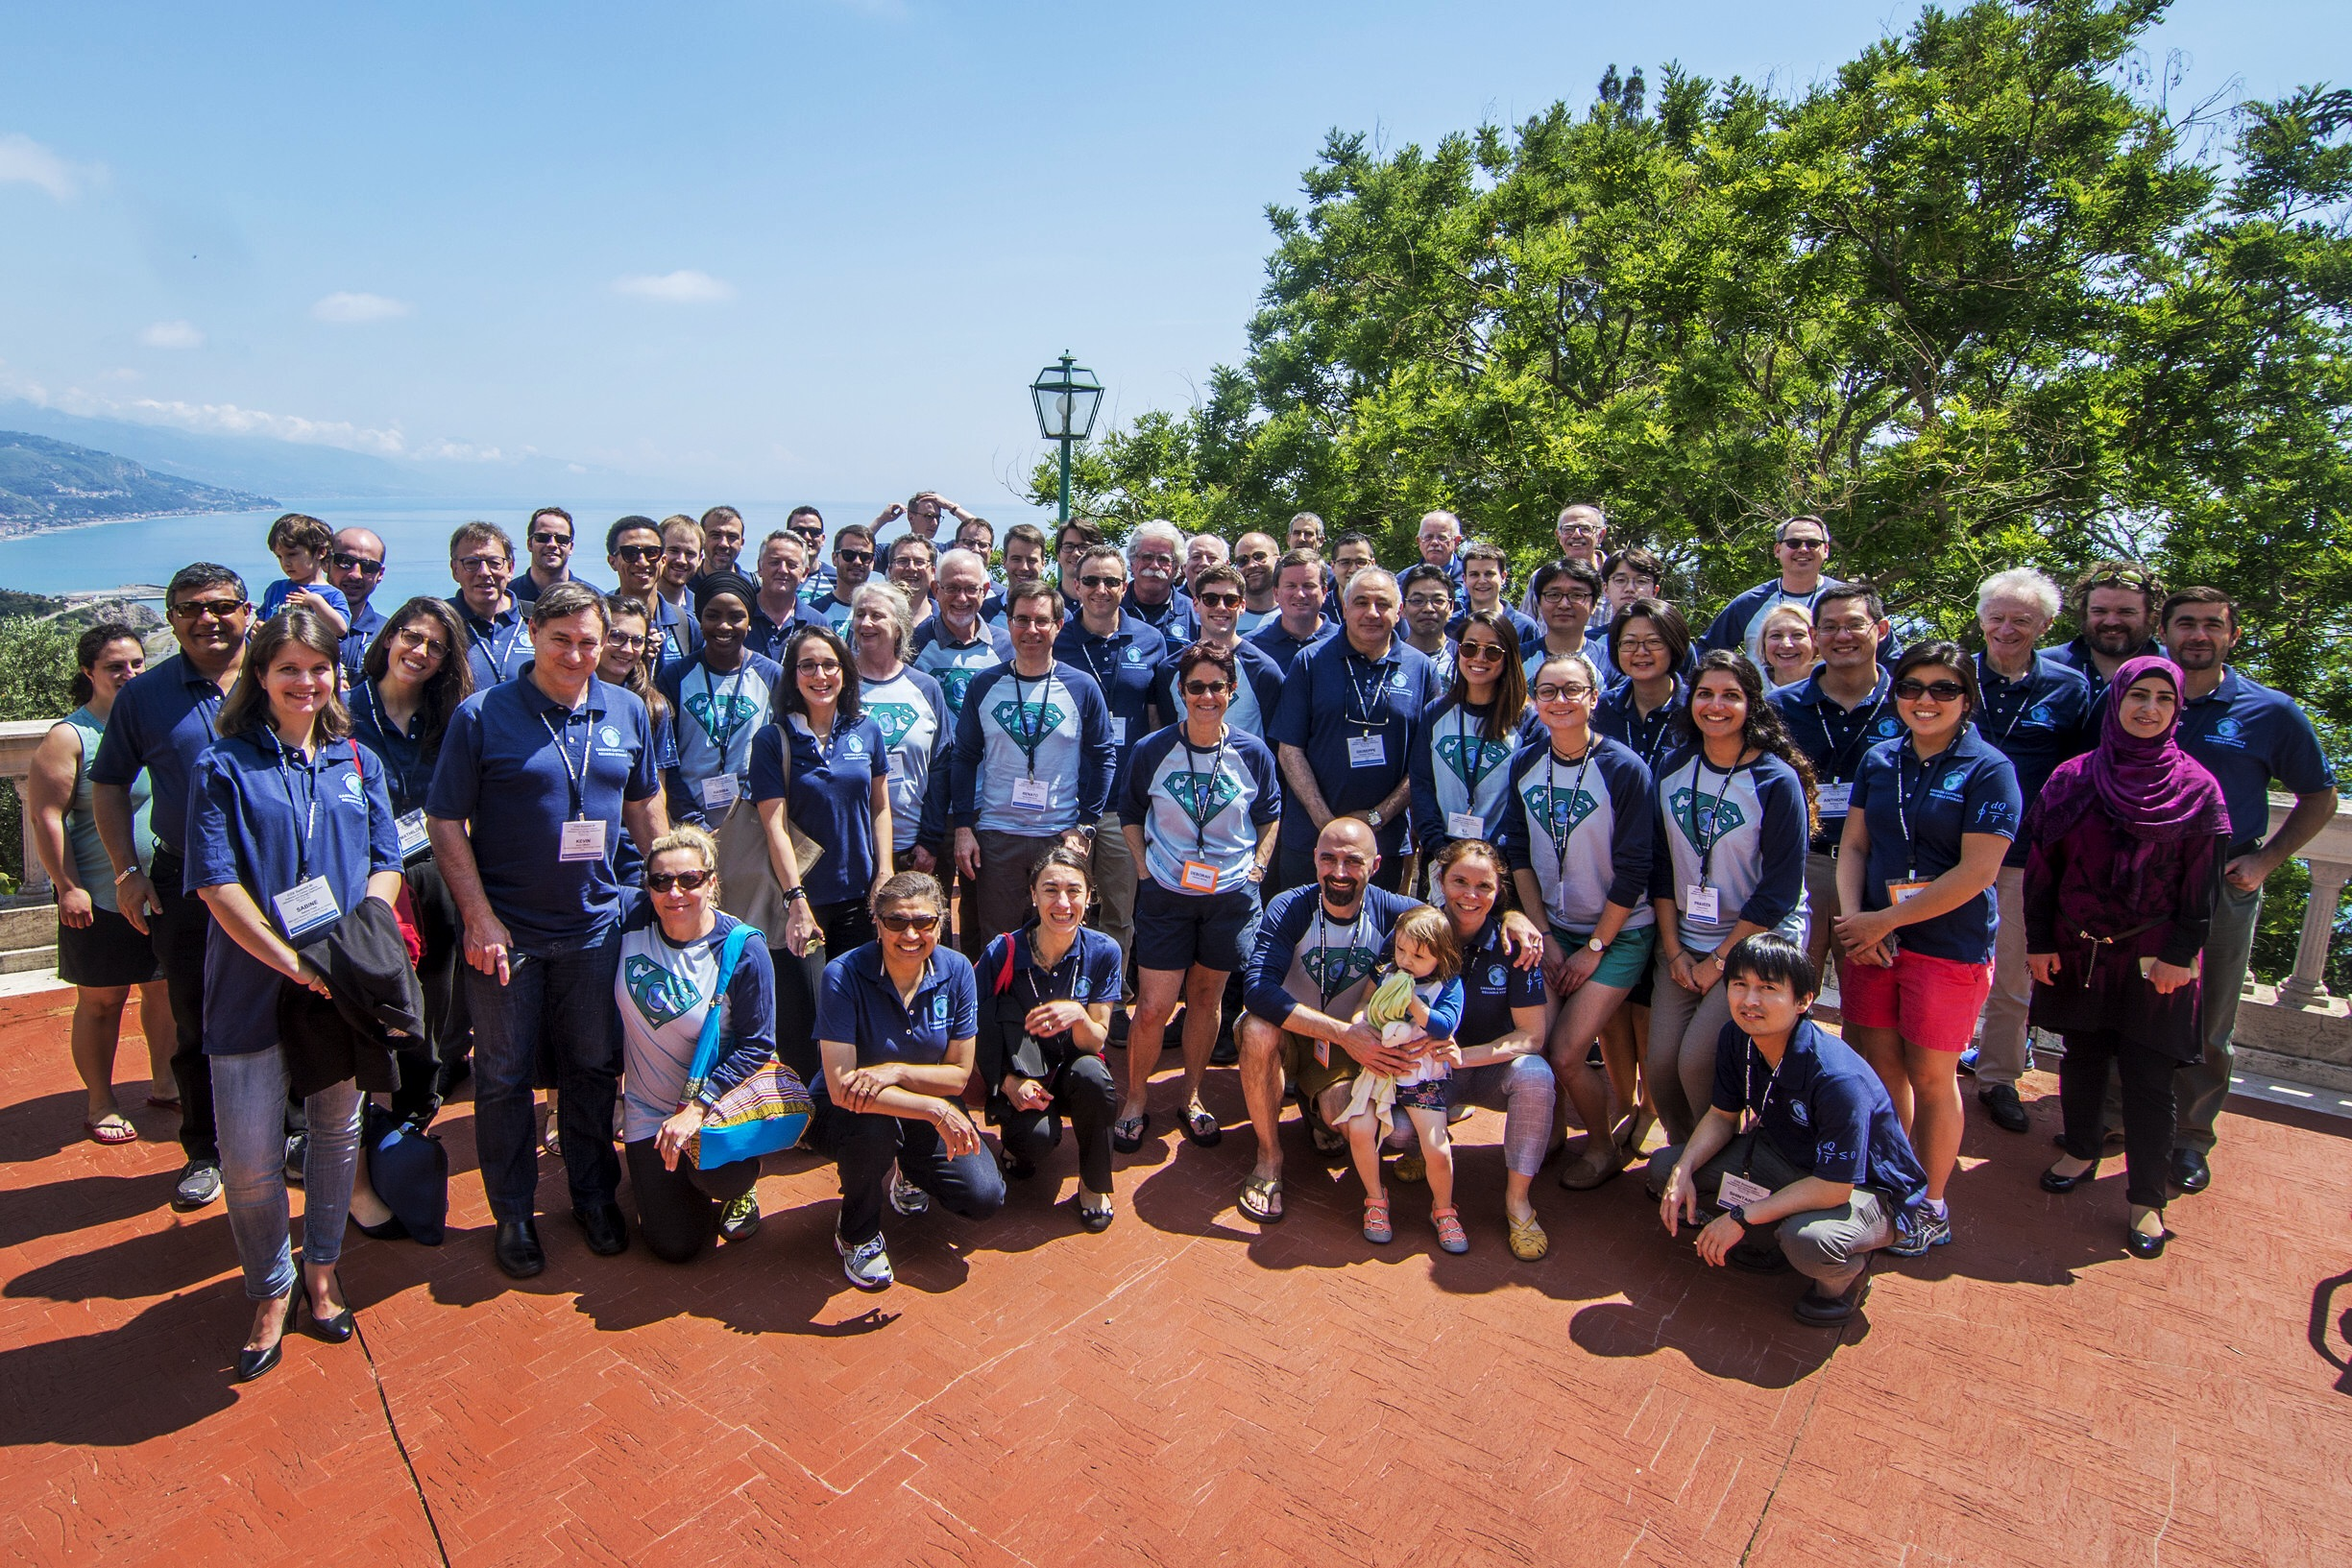 Attendees of the ECI CO2 Summit III conference in Calabria, Italy, May 2017.